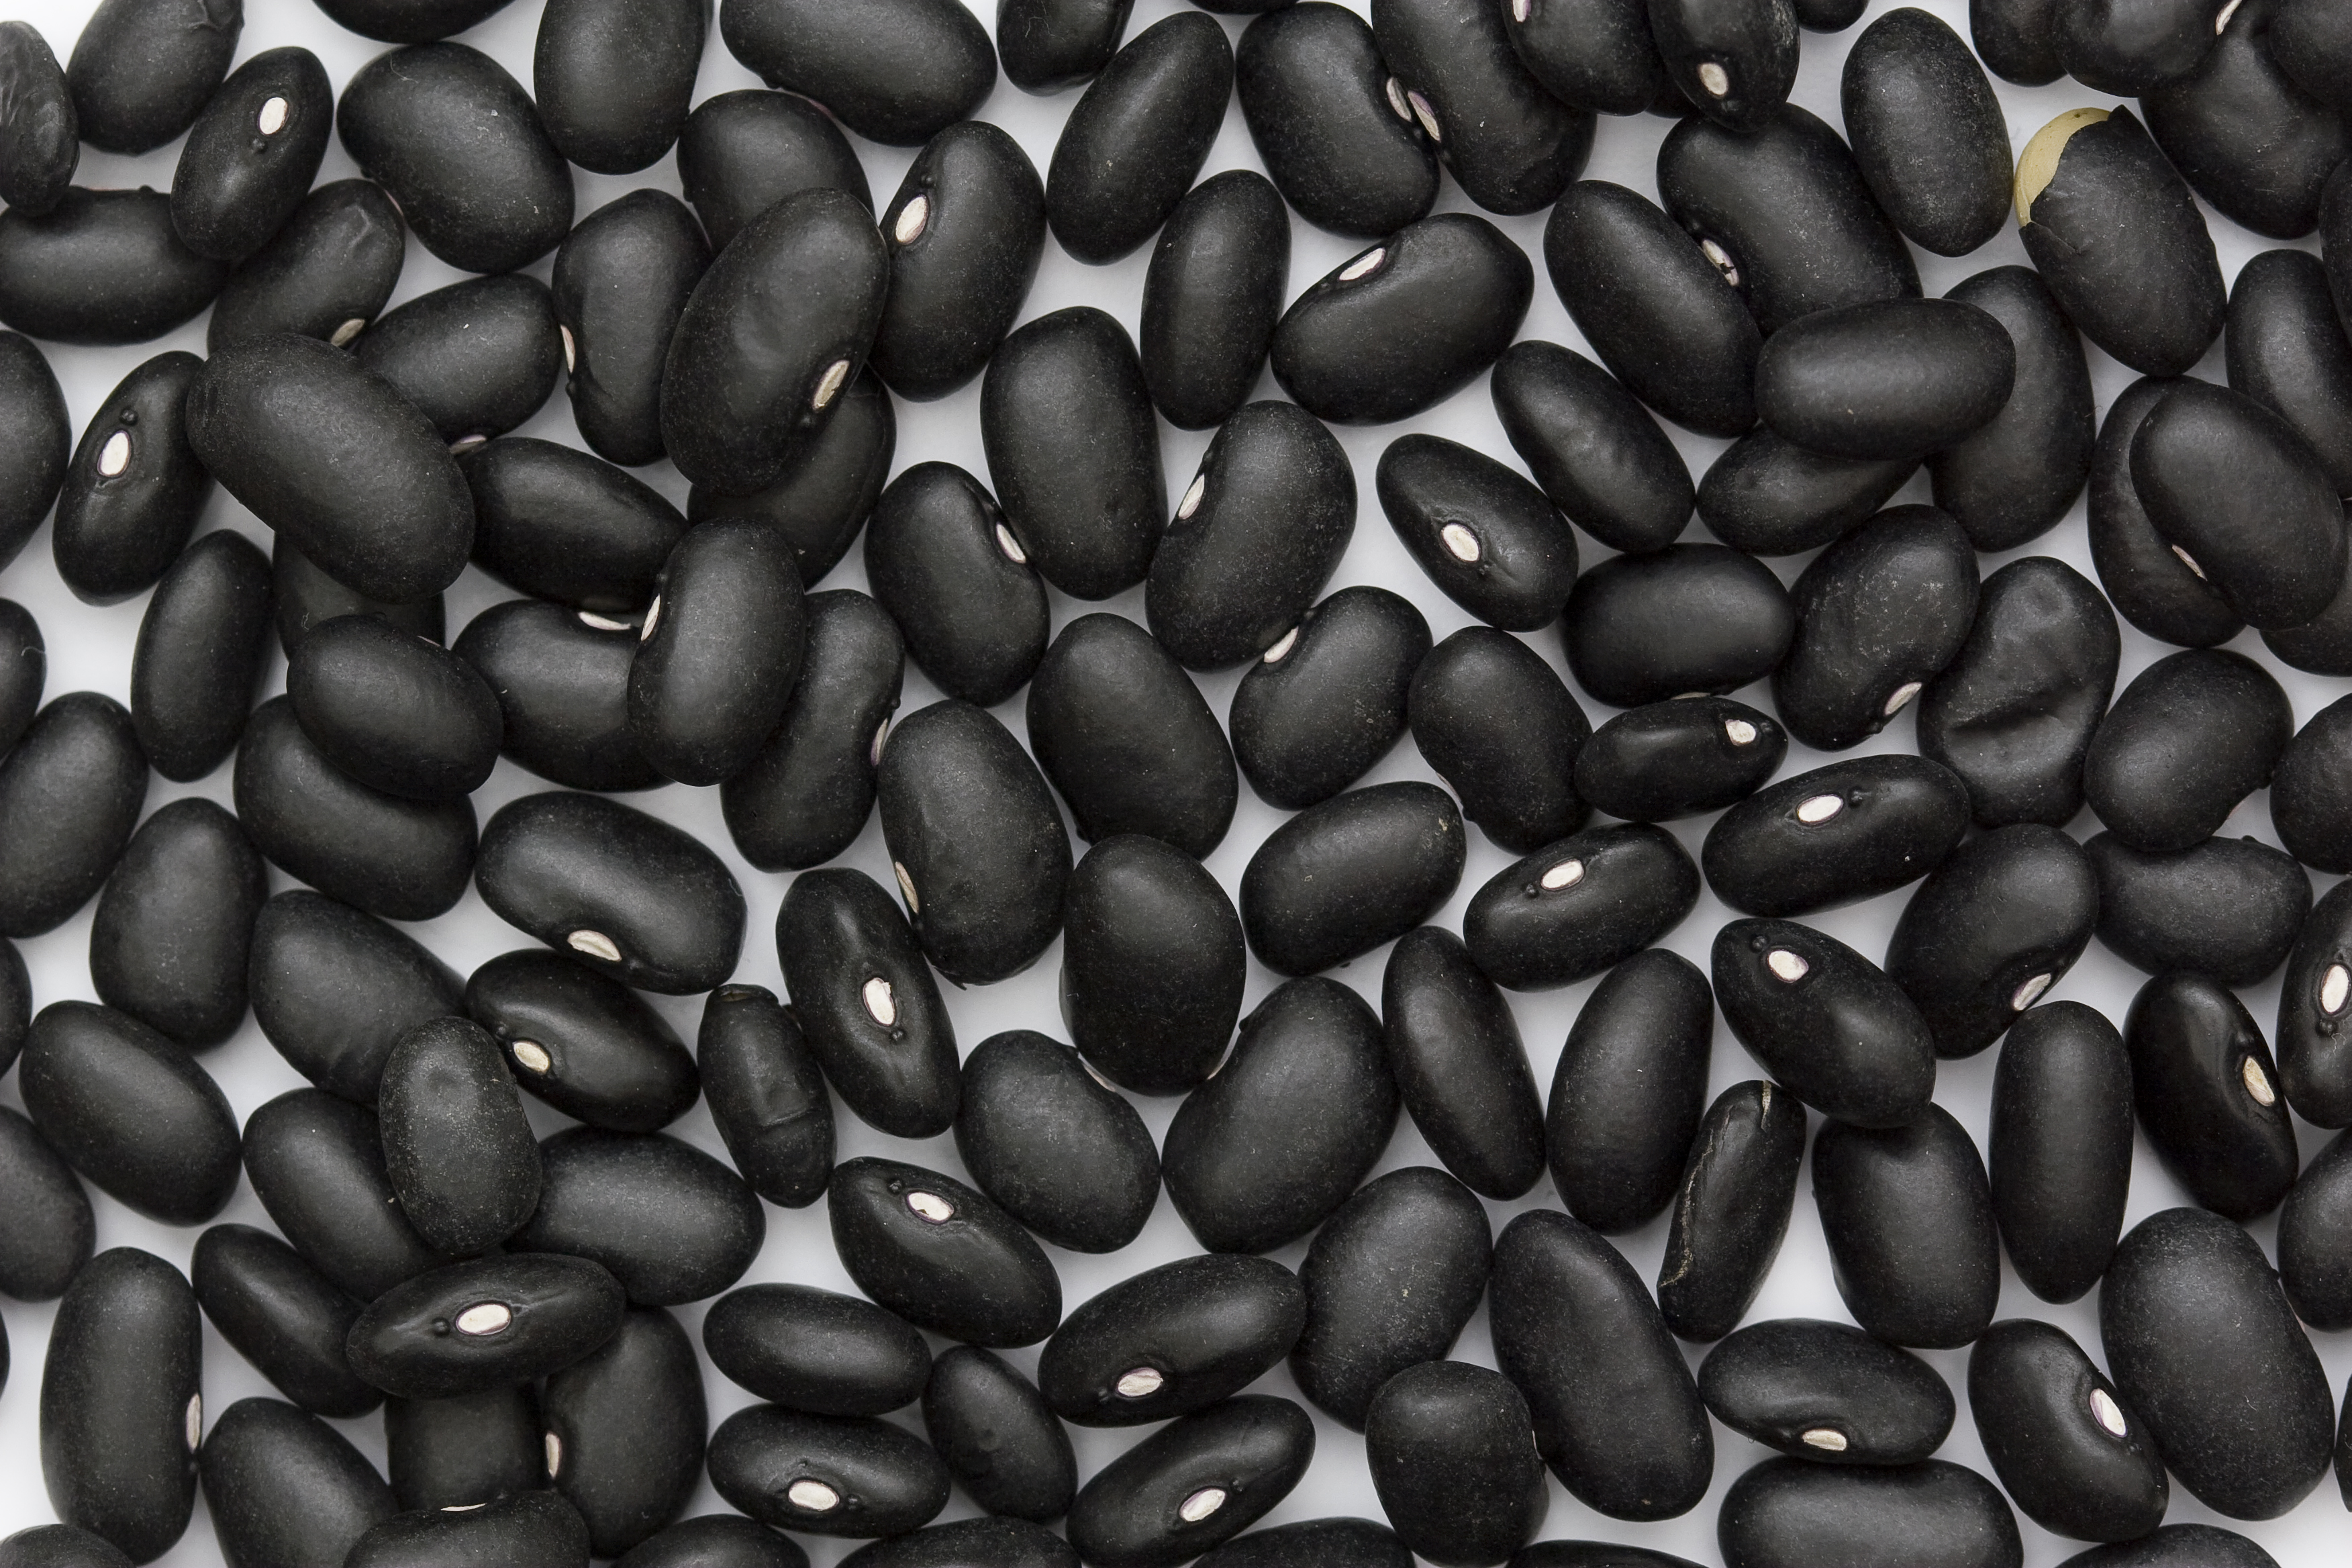 Indigestible oligosaccharide found in beans can increase bloating, gas, and discomfort.